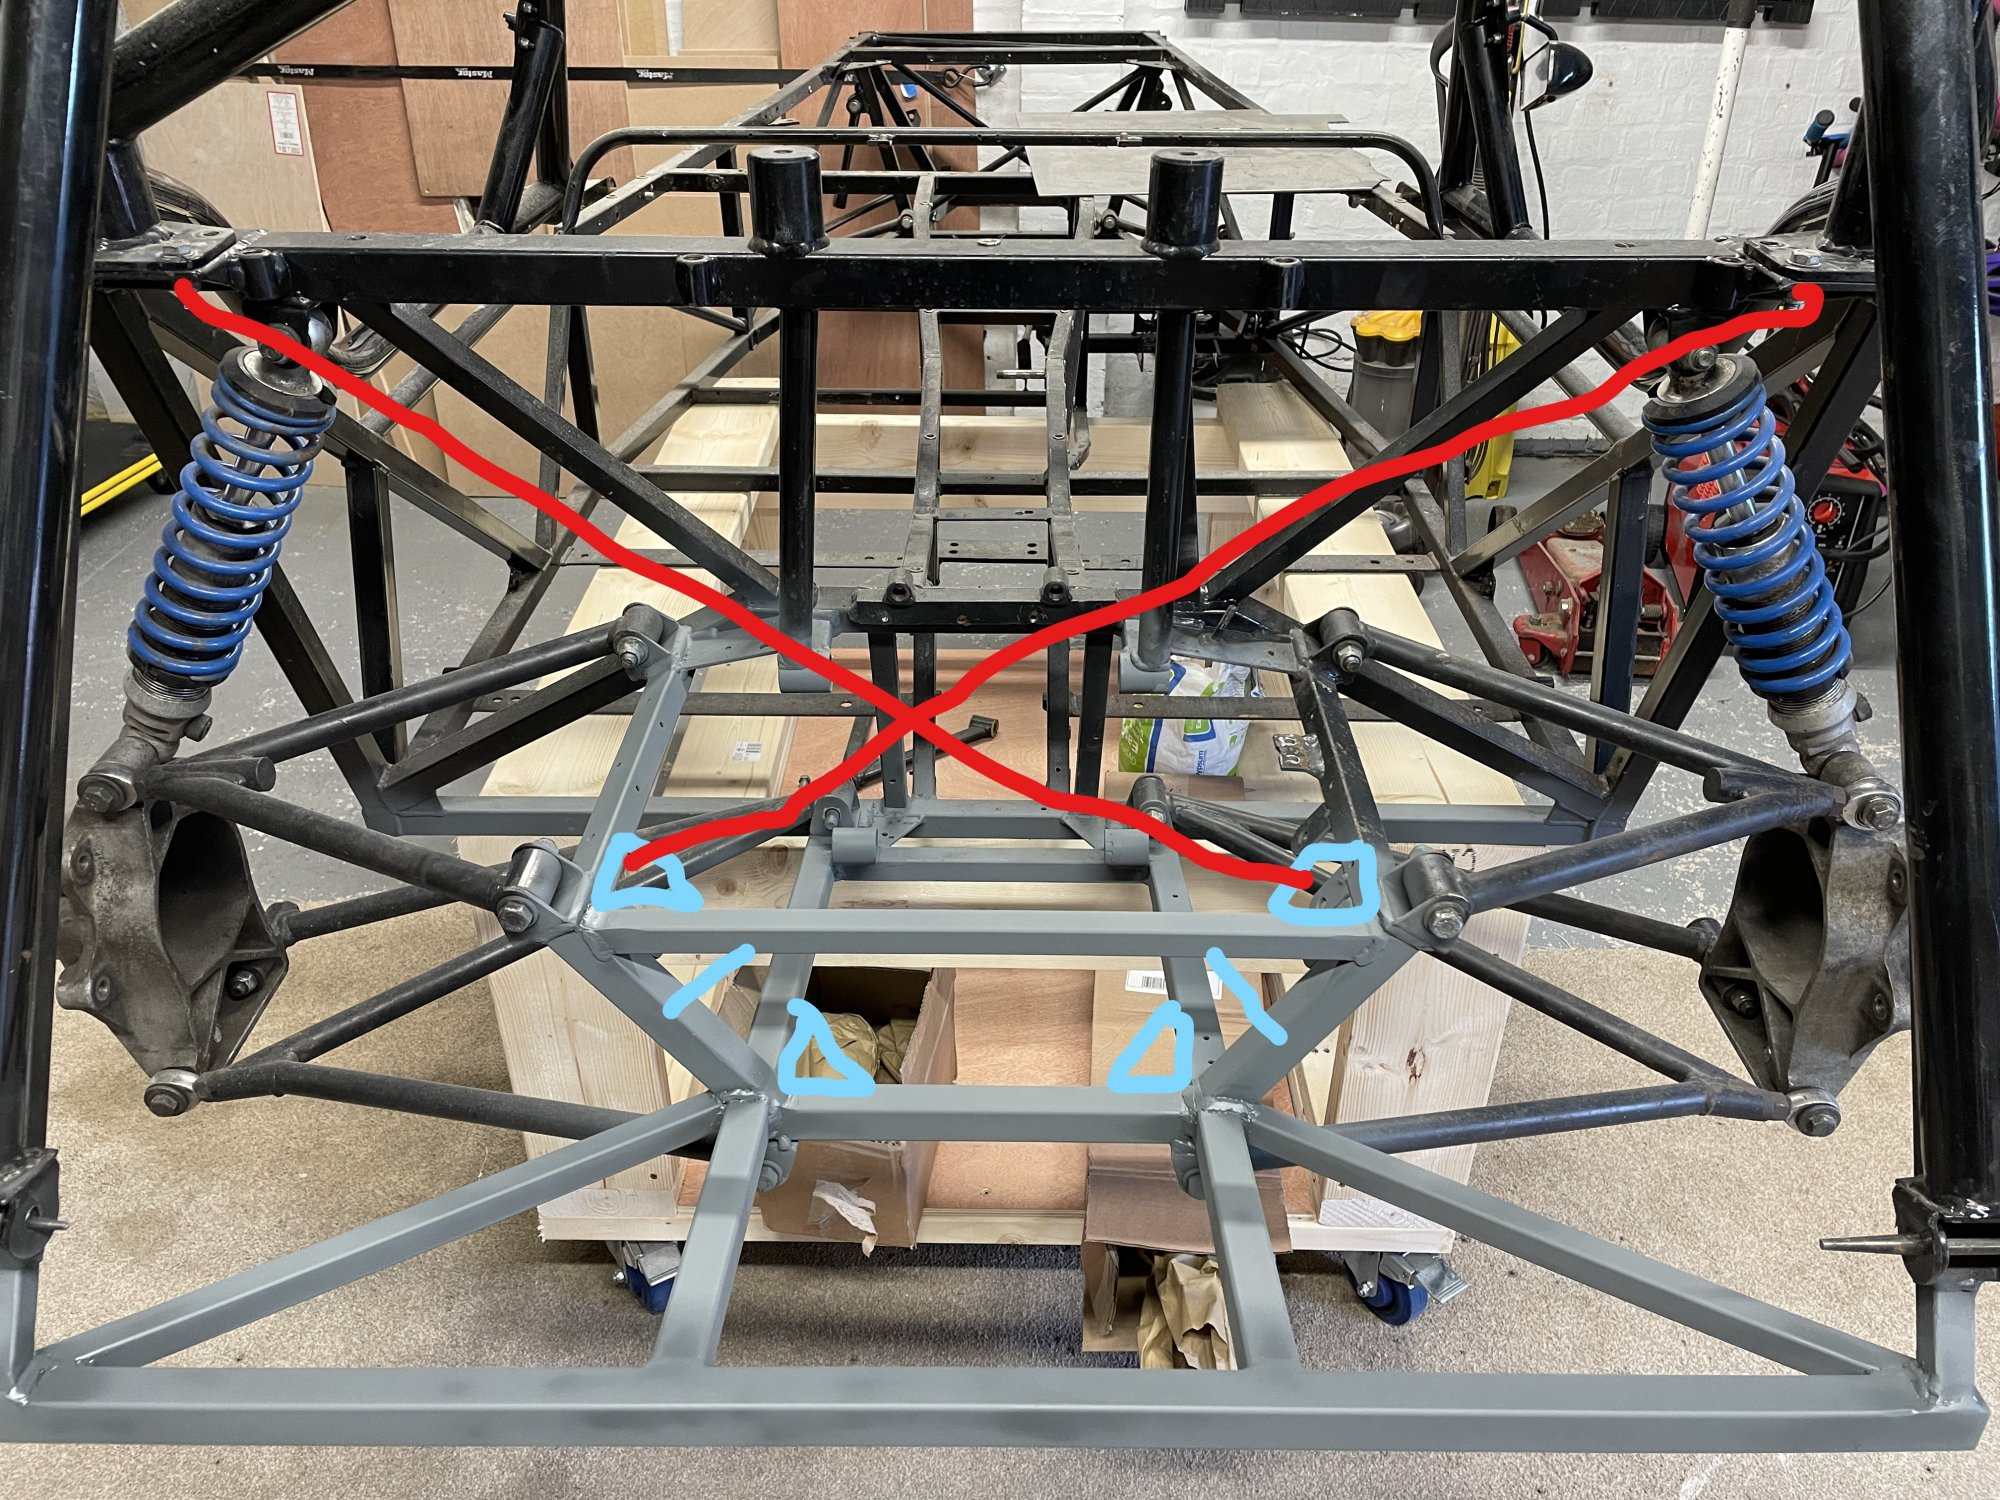 92447277_Chassis2.jpg